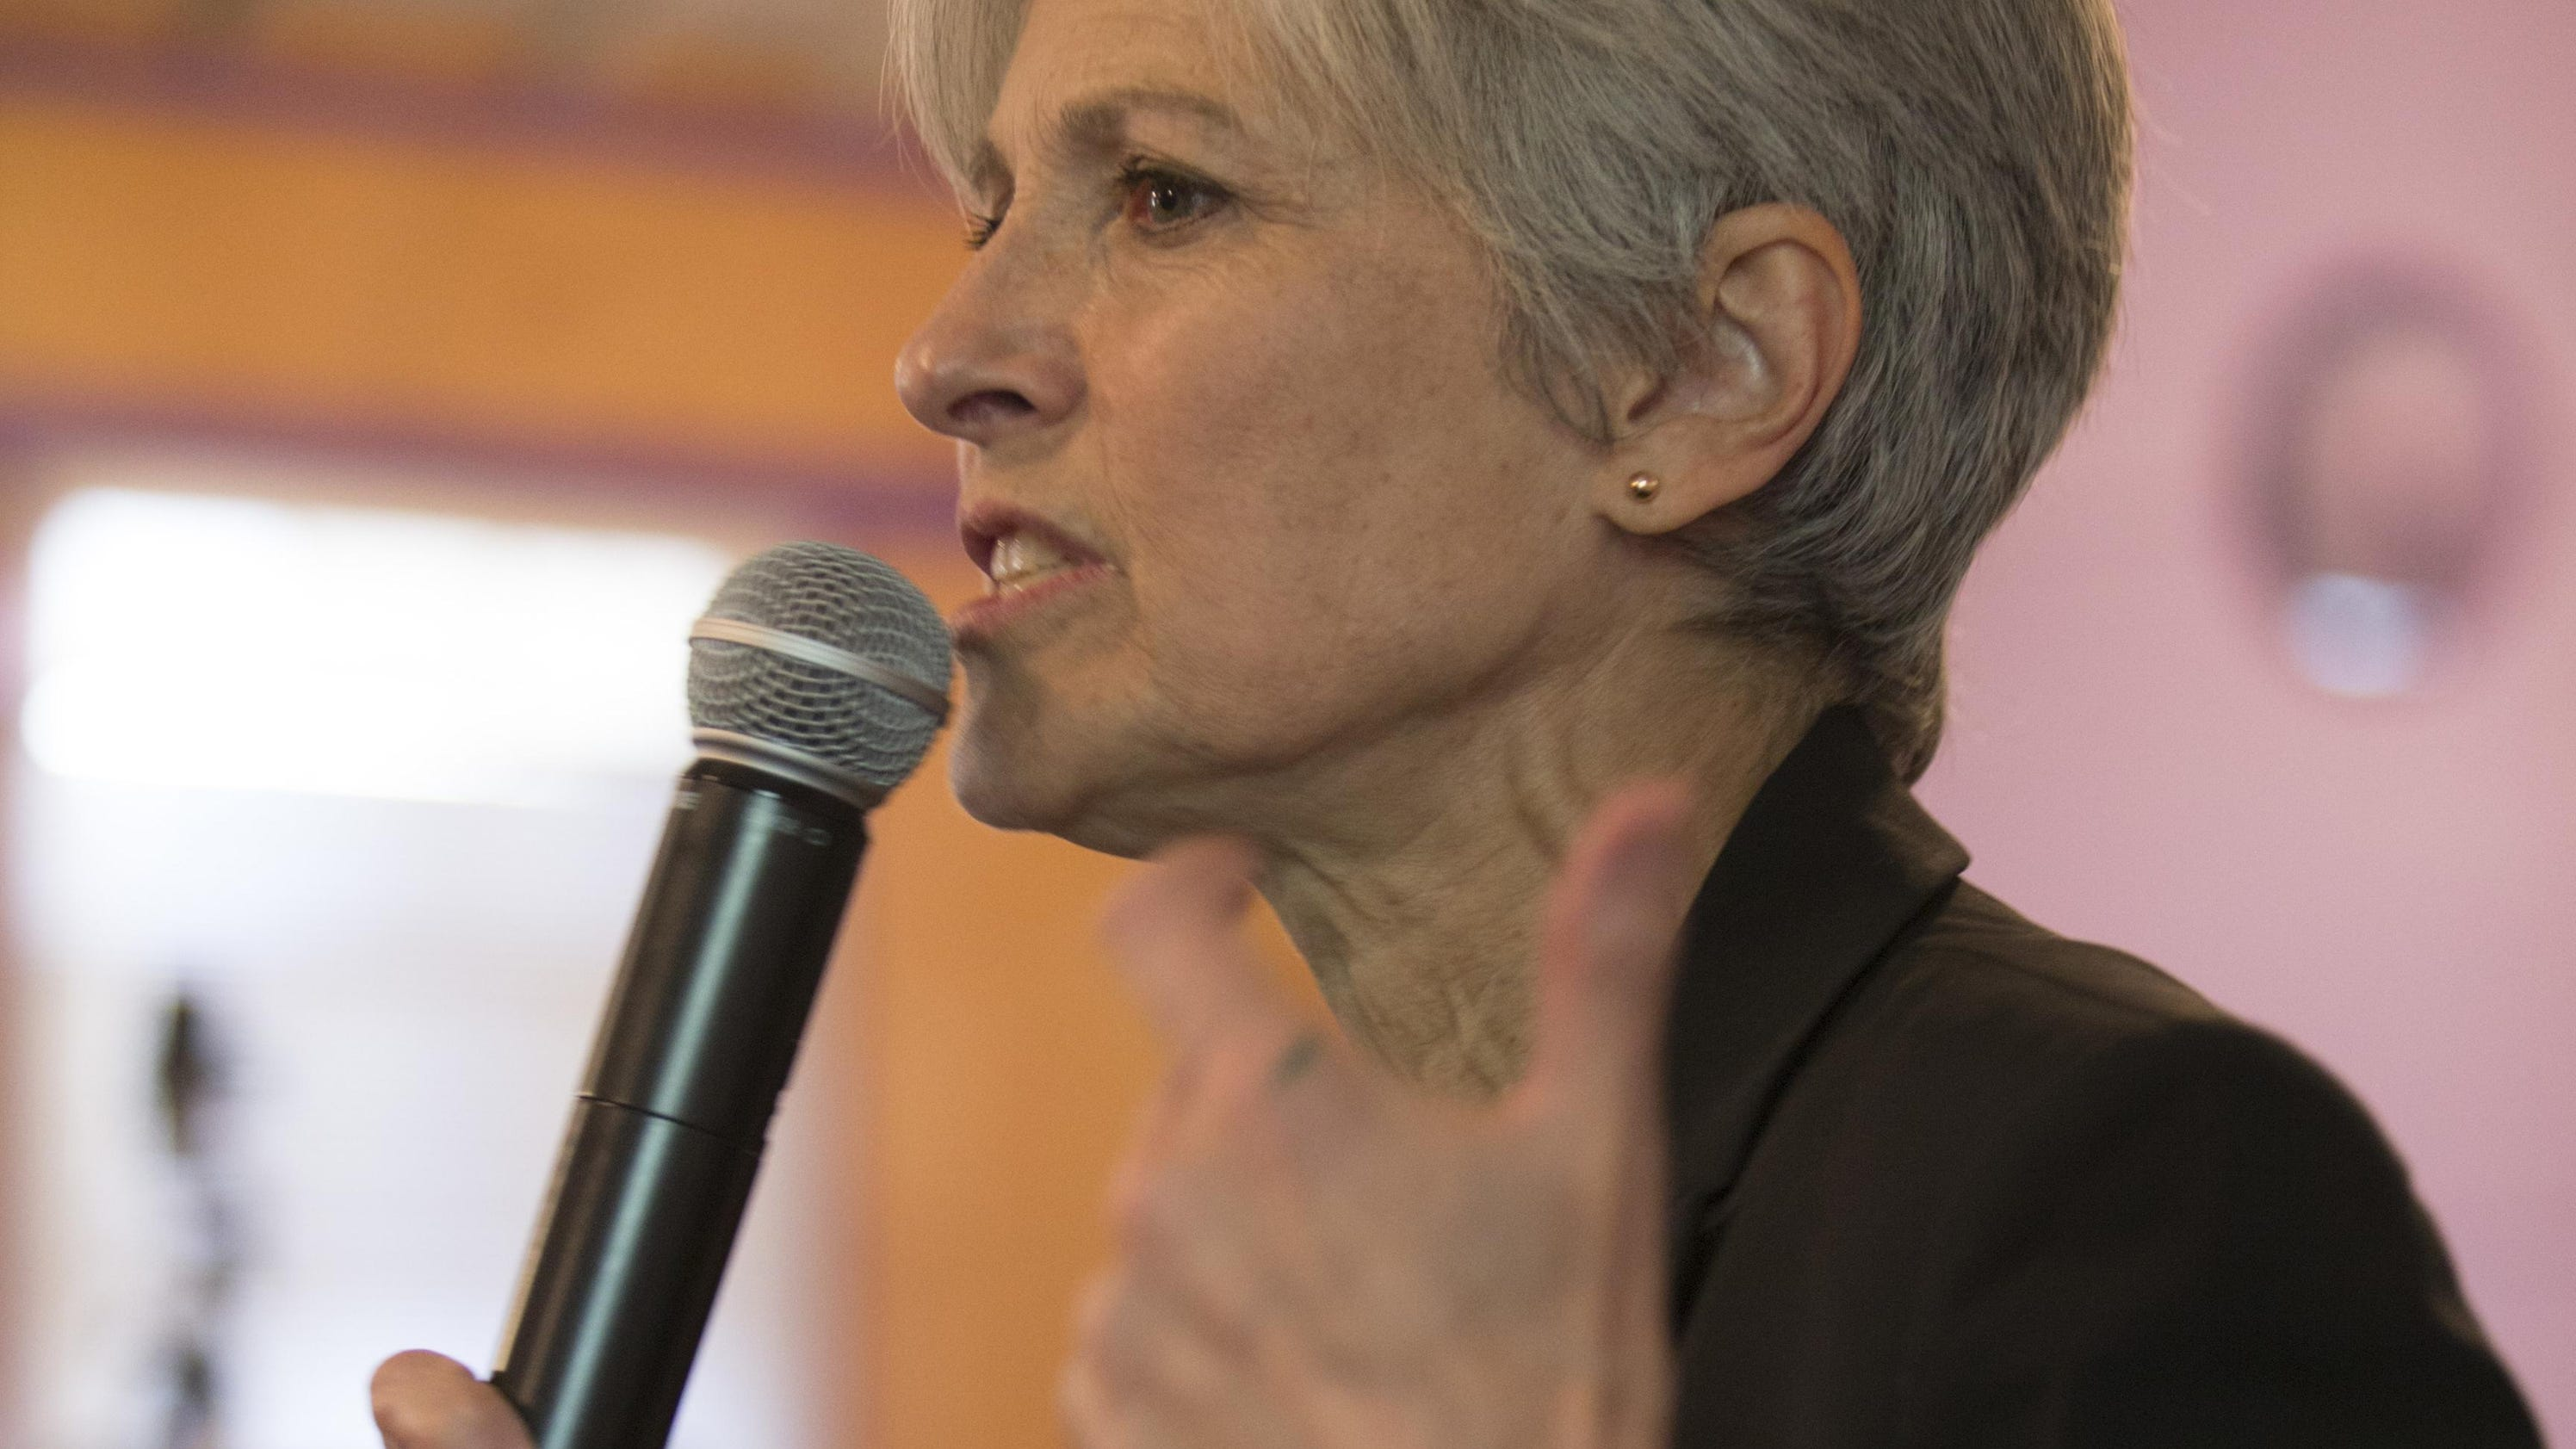 Green Party candidate Jill Stein filed for a manual recount of Michigan's  4.8 million presidential votes Wednesday afternoon, setting off an  unprecedented ...